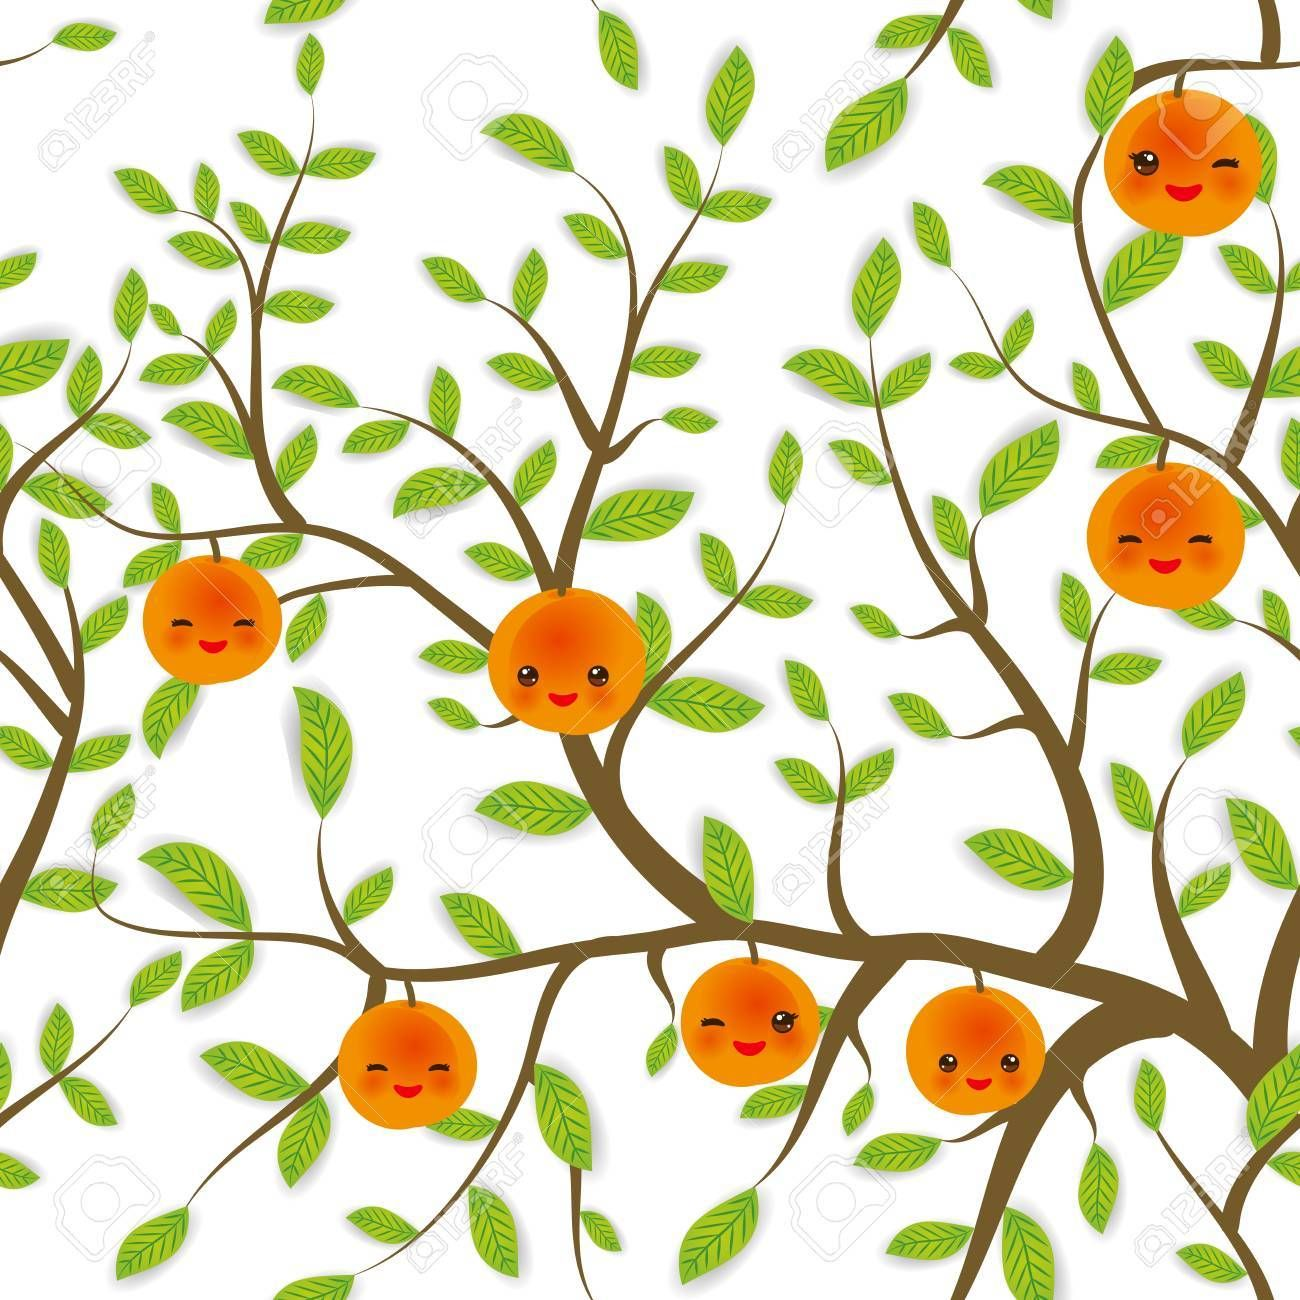 seamless pattern Brown branches with green leaves, peach apricot fruits Kawaii funny muzzle with pi